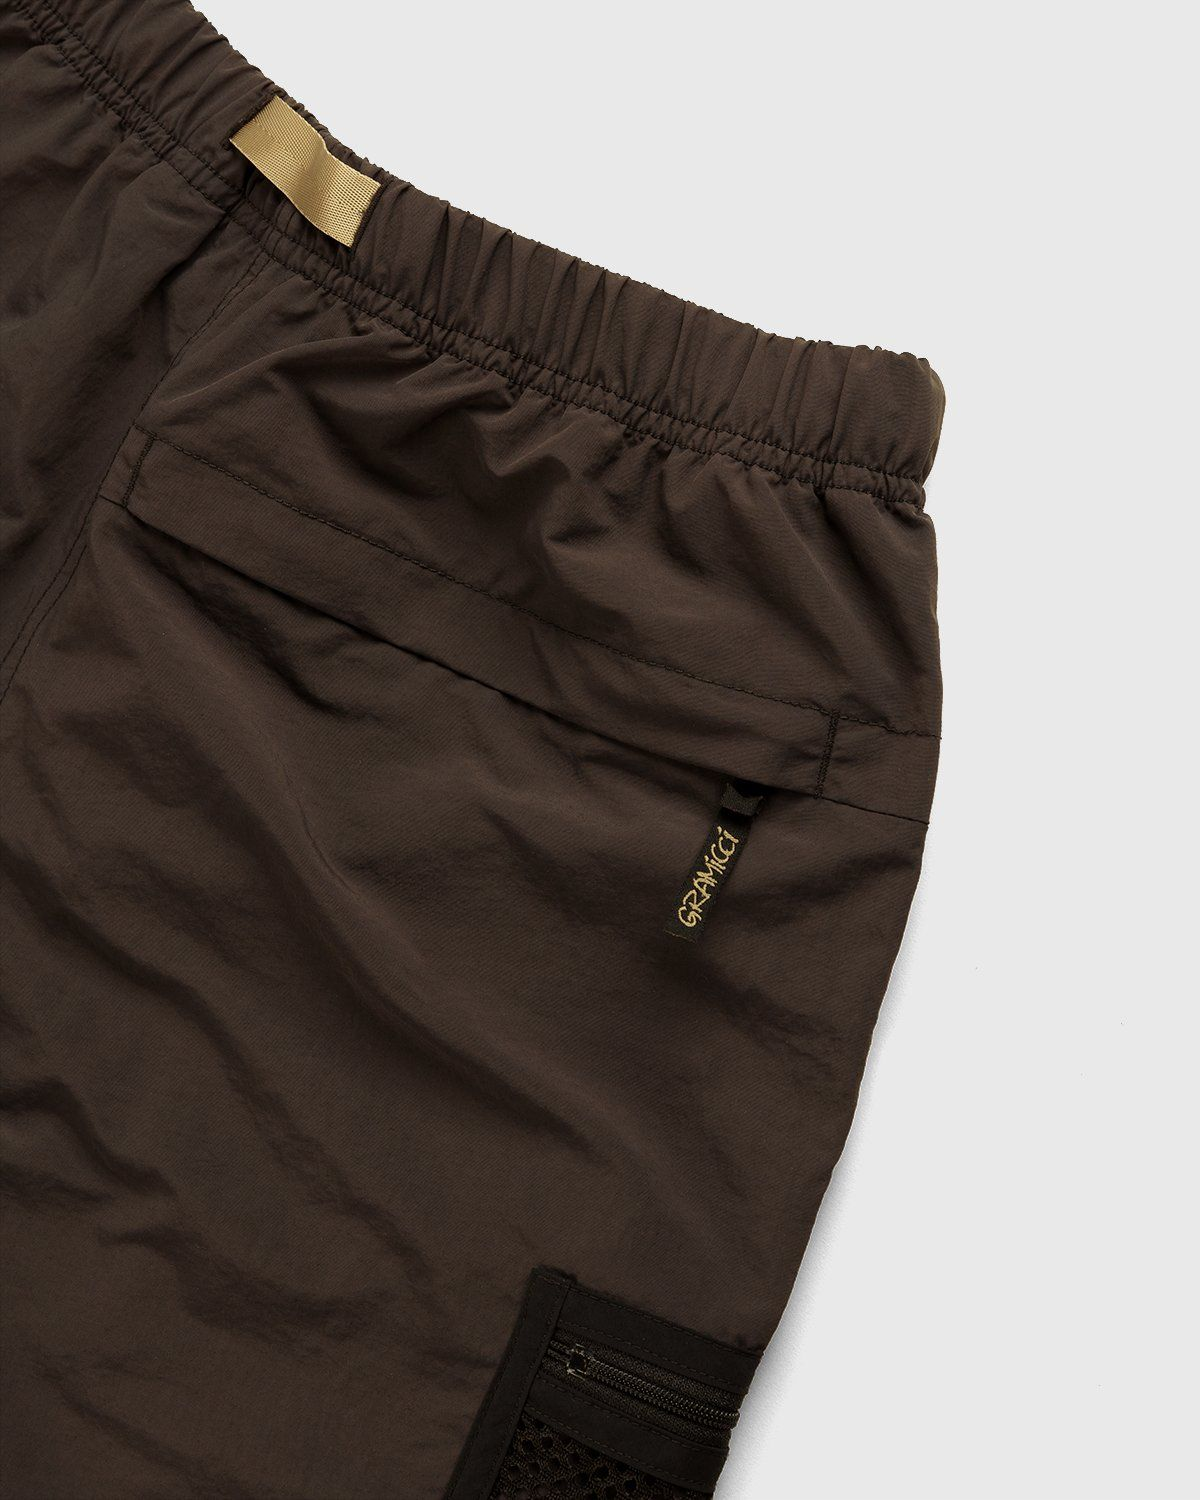 Gramicci for Highsnobiety – Shorts Brown - Image 6